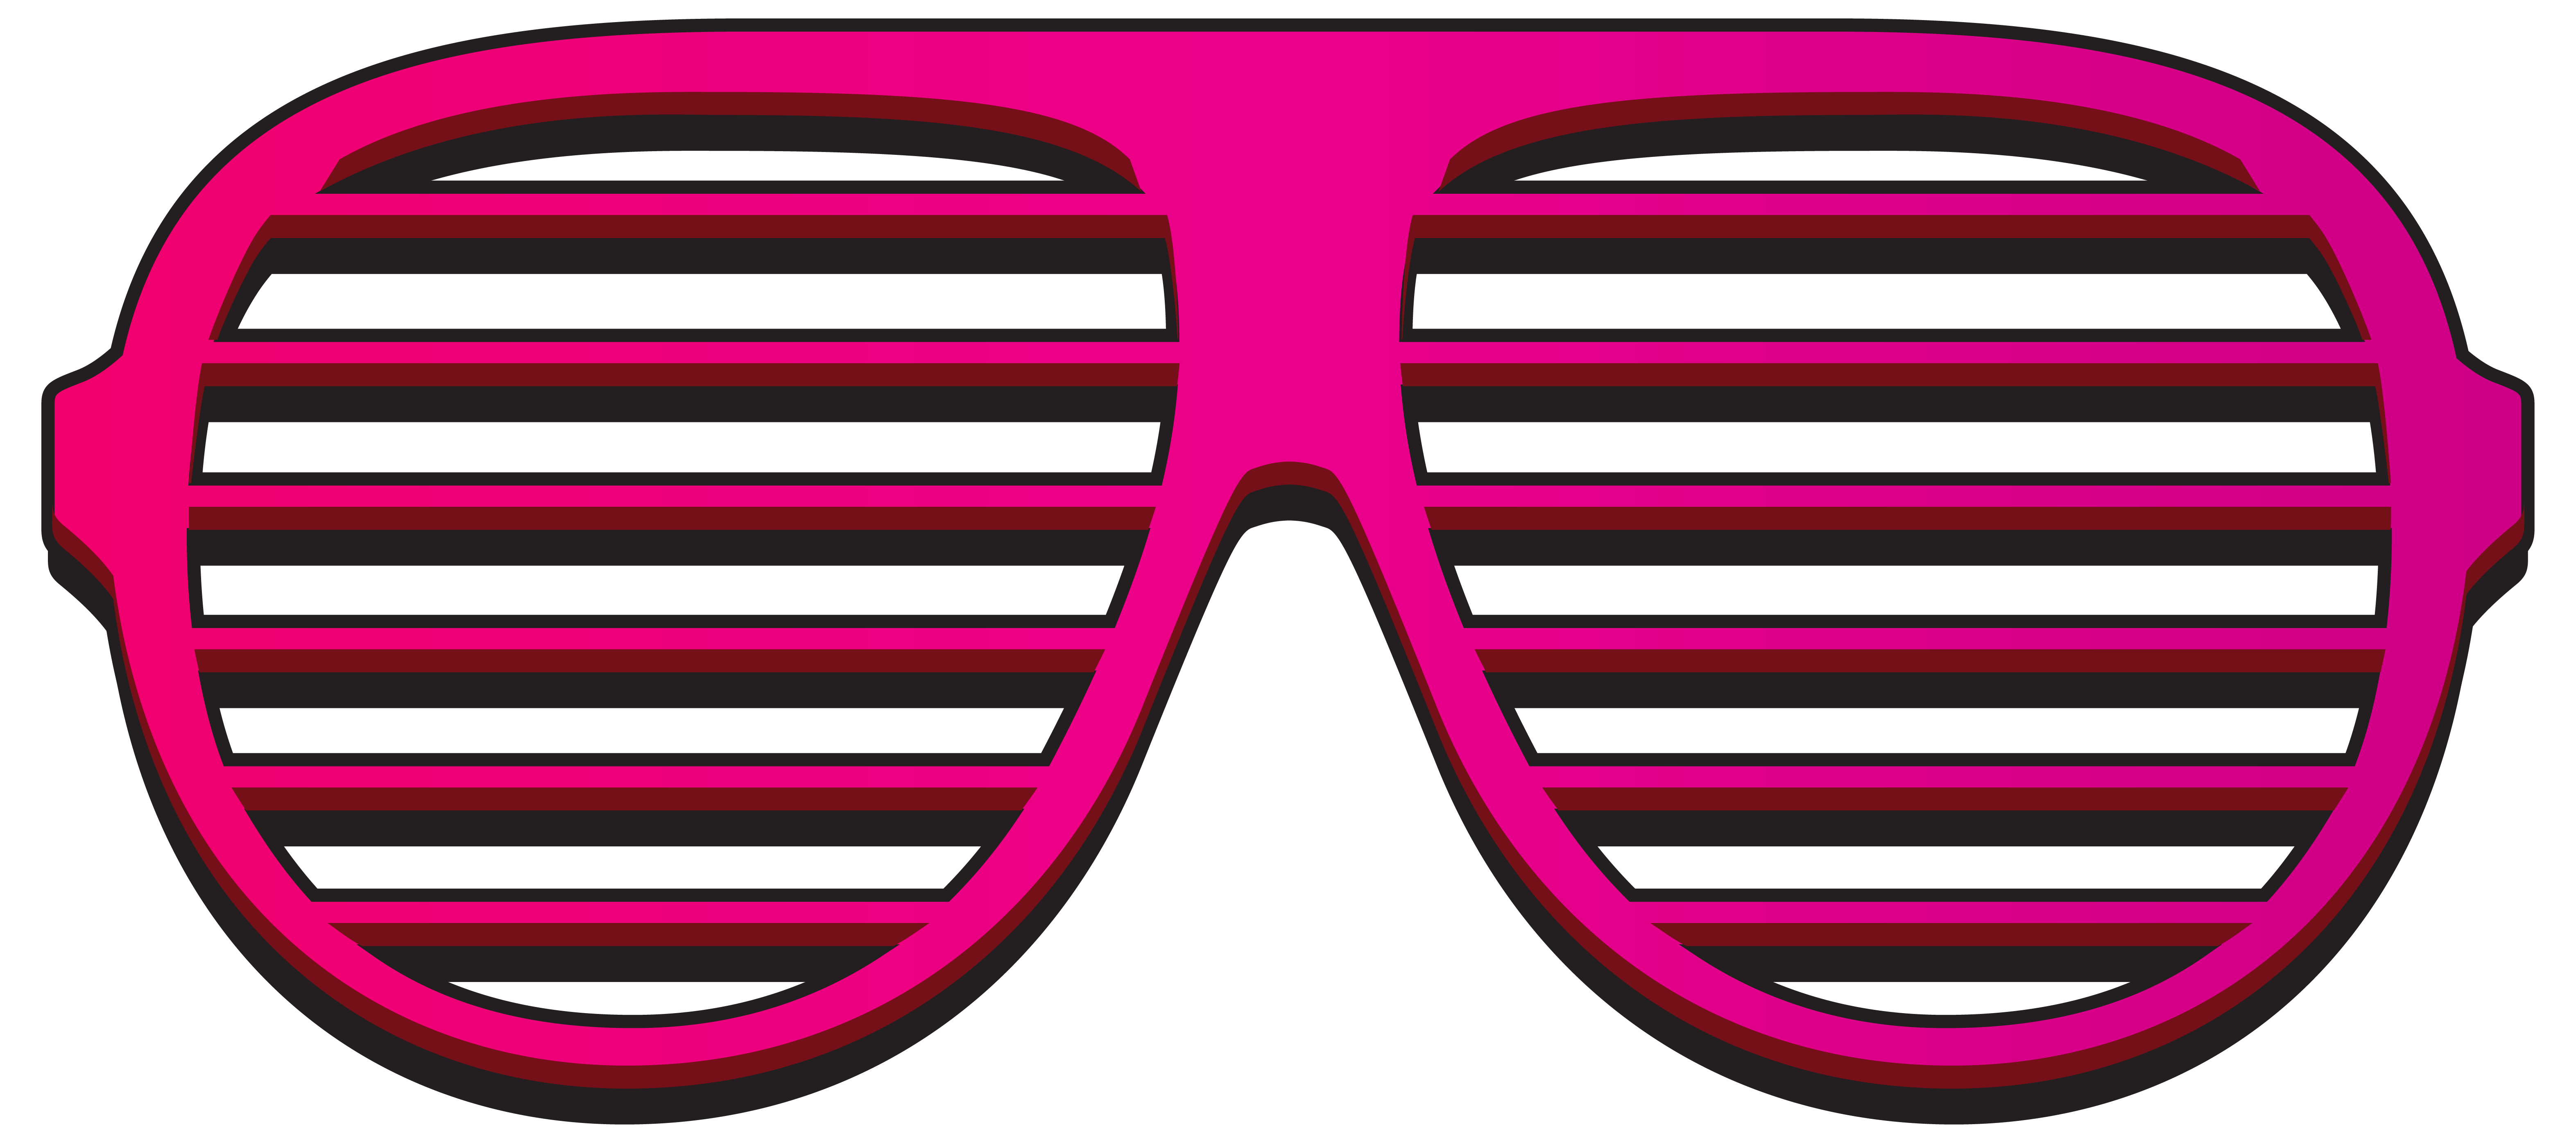 Pink shutter shades png. Watermelon clipart sunglasses